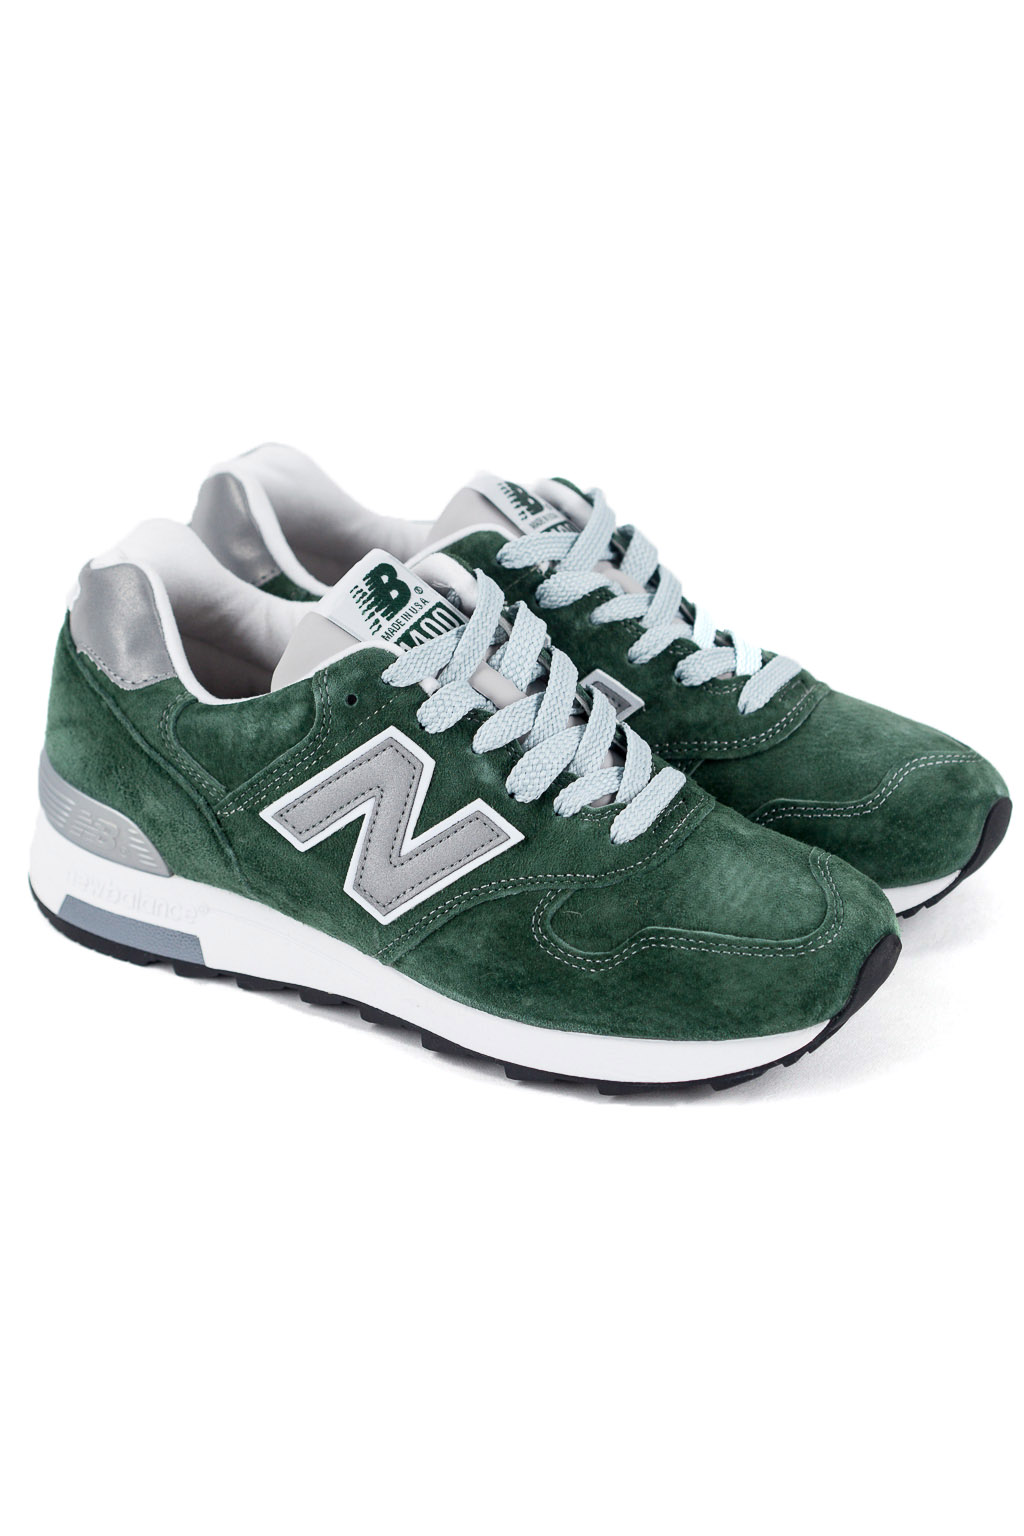 New Balance M1400MG - Made in USA